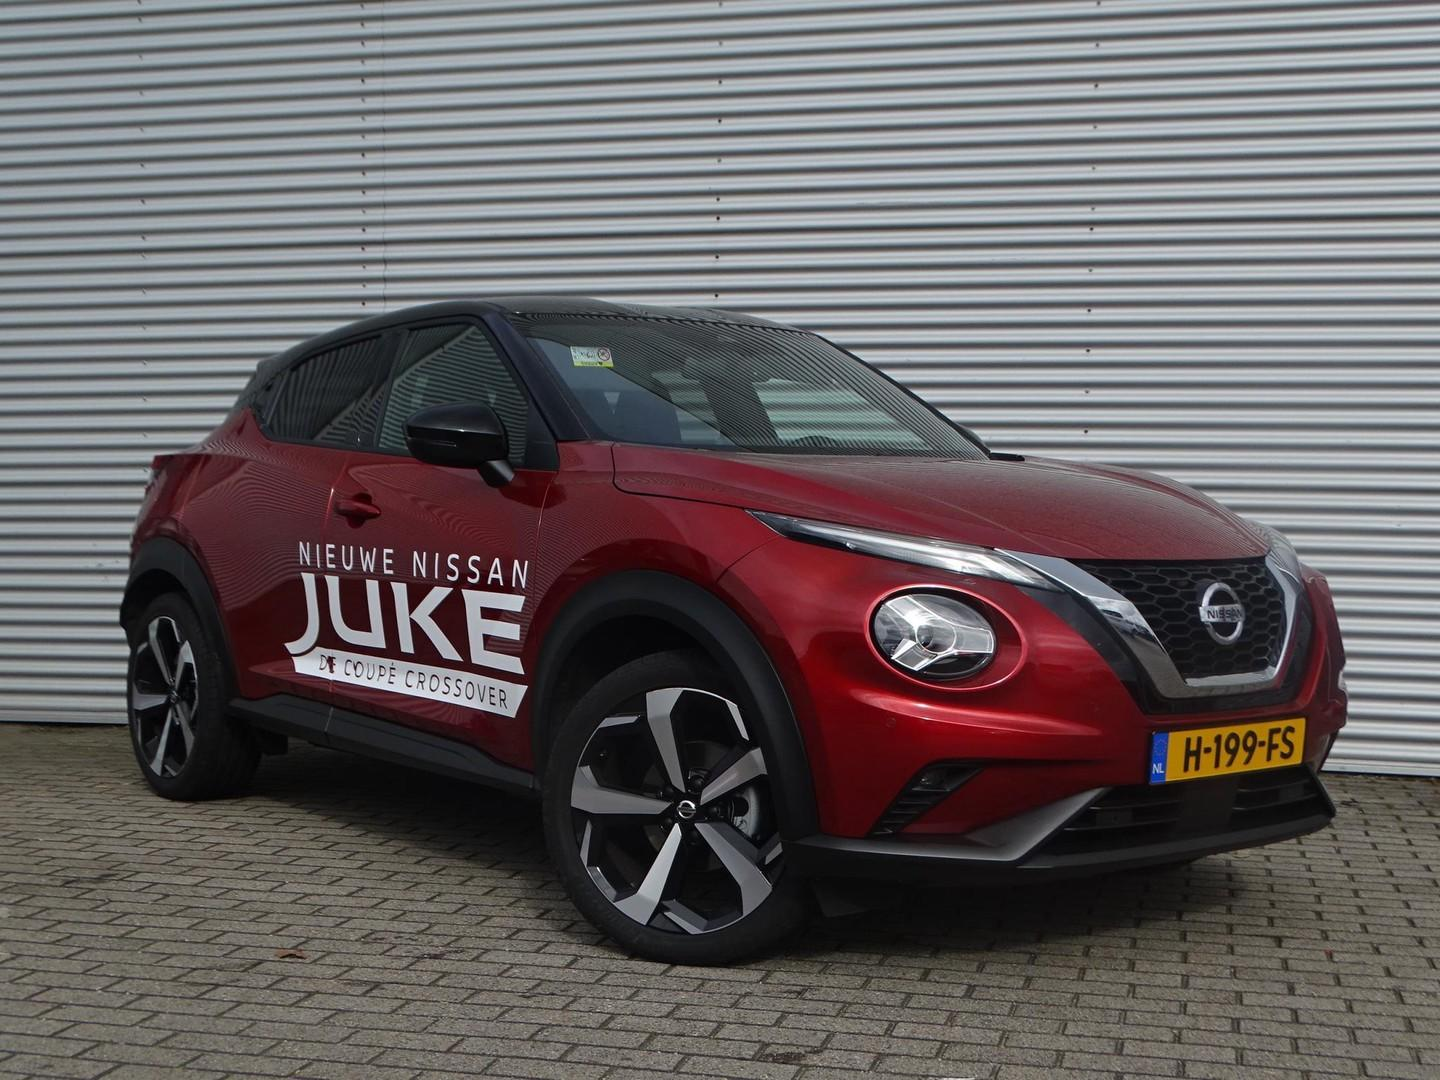 Nissan Juke 1.0 dig-t premiere edition automaat demo